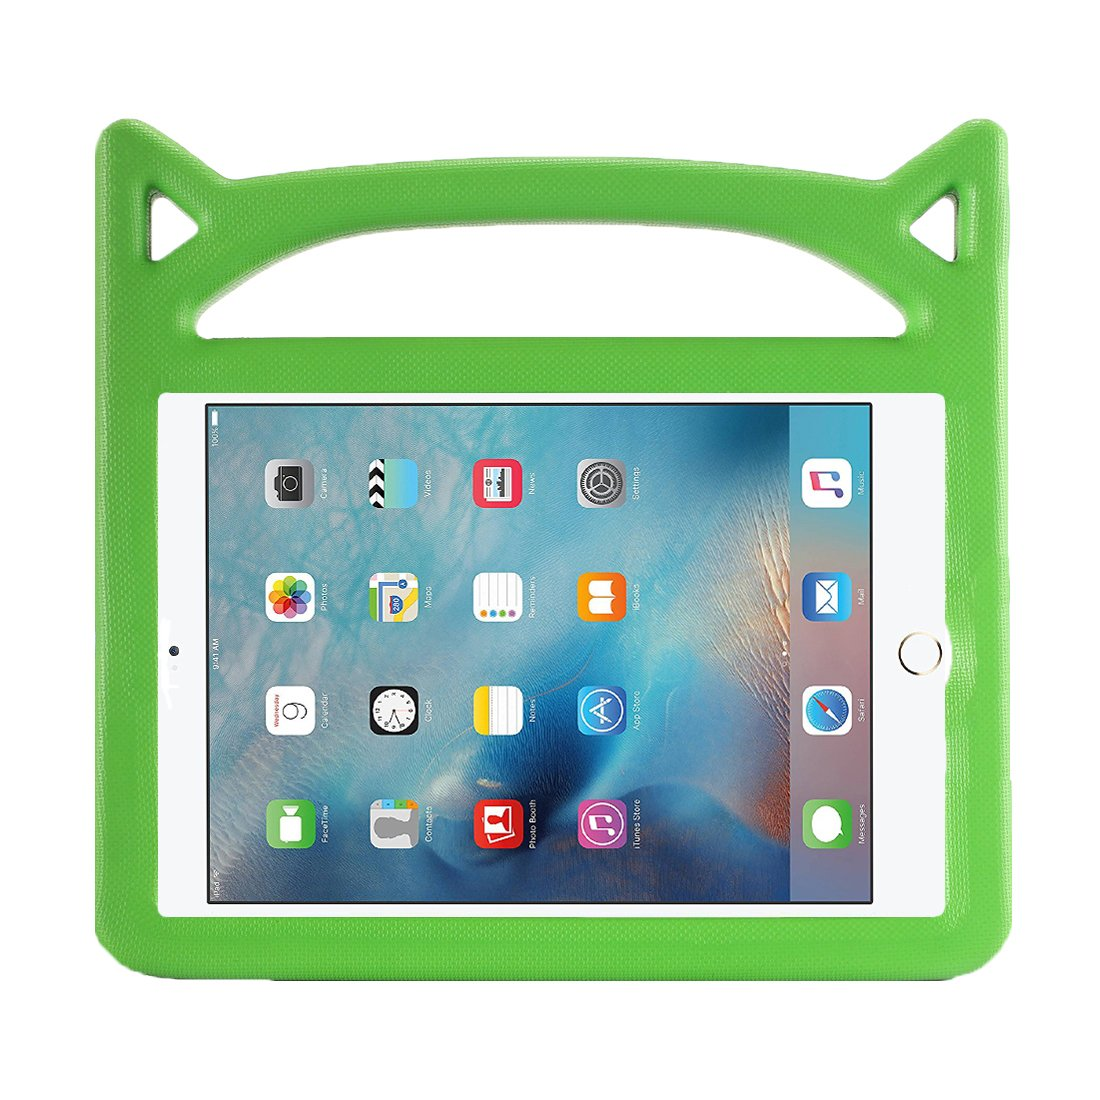 Apple iPad Case for Kids, New iPad 2017 2018 9.7 inch Case/iPad Pro/iPad Air 1 2 Cute Cartoon Case, APLPJYR Kids Friendly Light Weight Shock Proof Convertible Handle Stand Cover (Green)